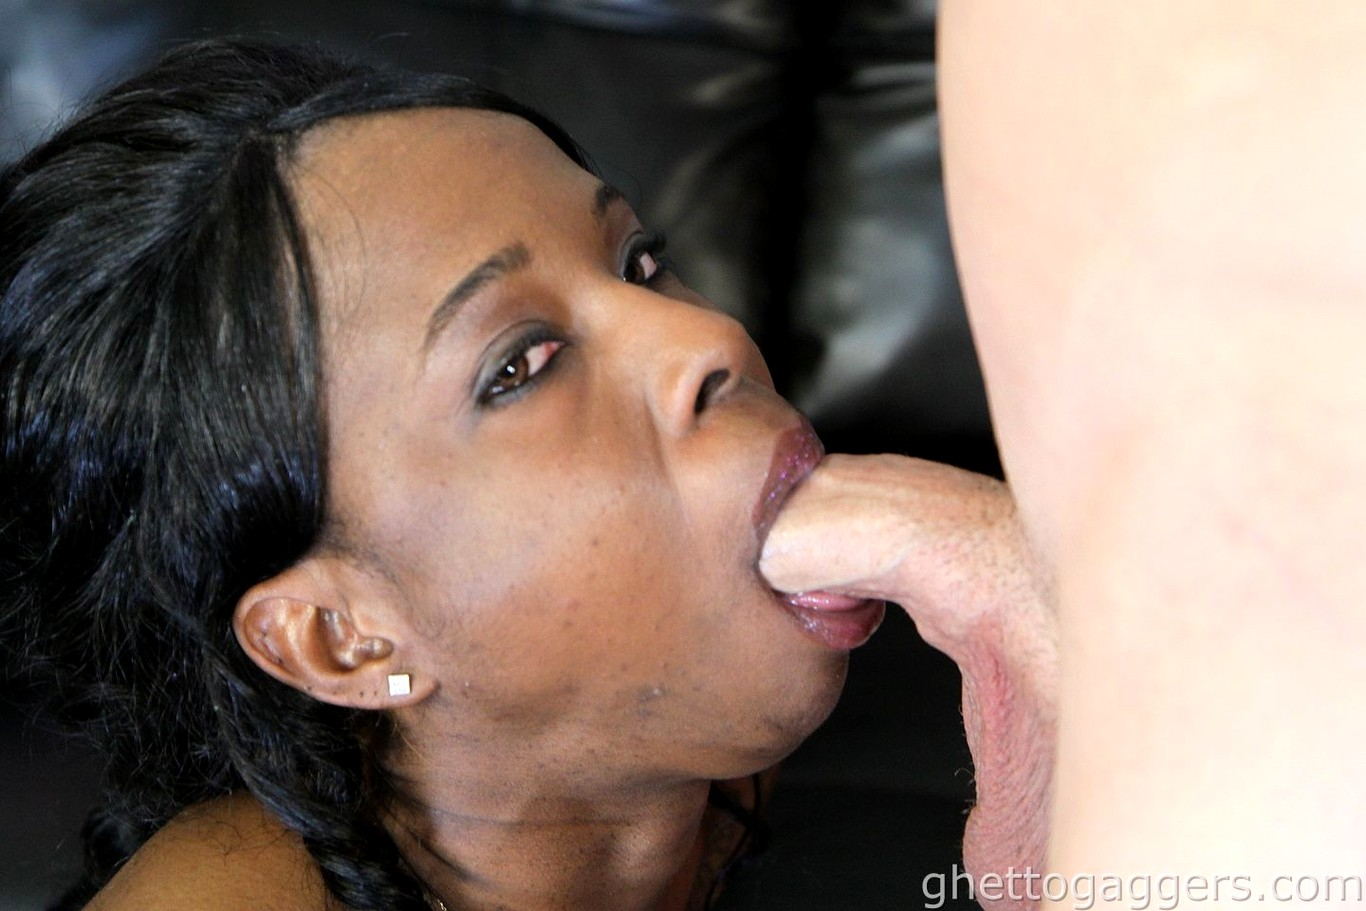 Short haired black amateur ghetto whore gagging on dick